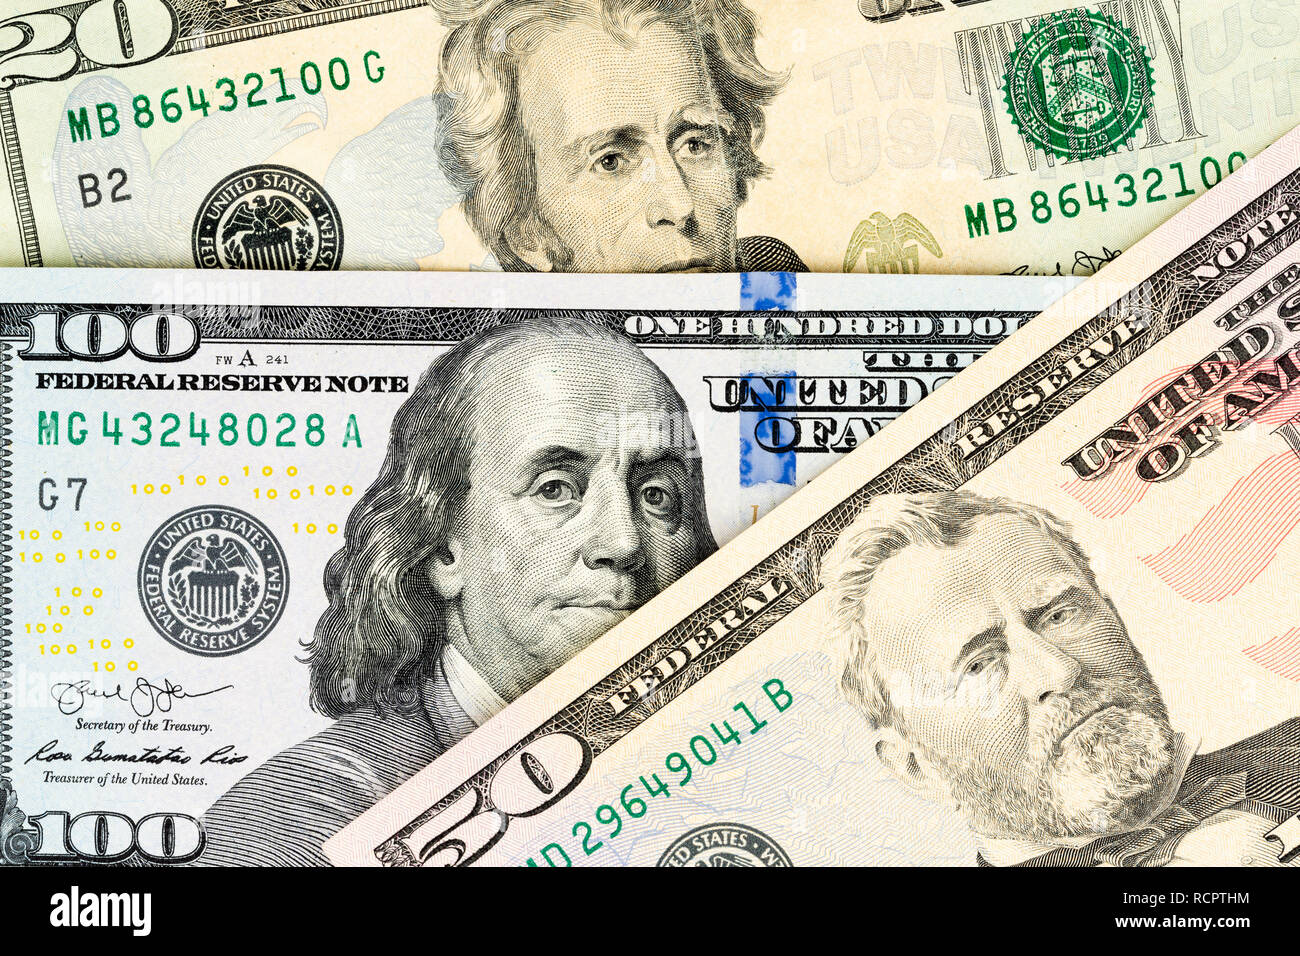 US-Dollar Banknotes as image background, view from above - Stock Image